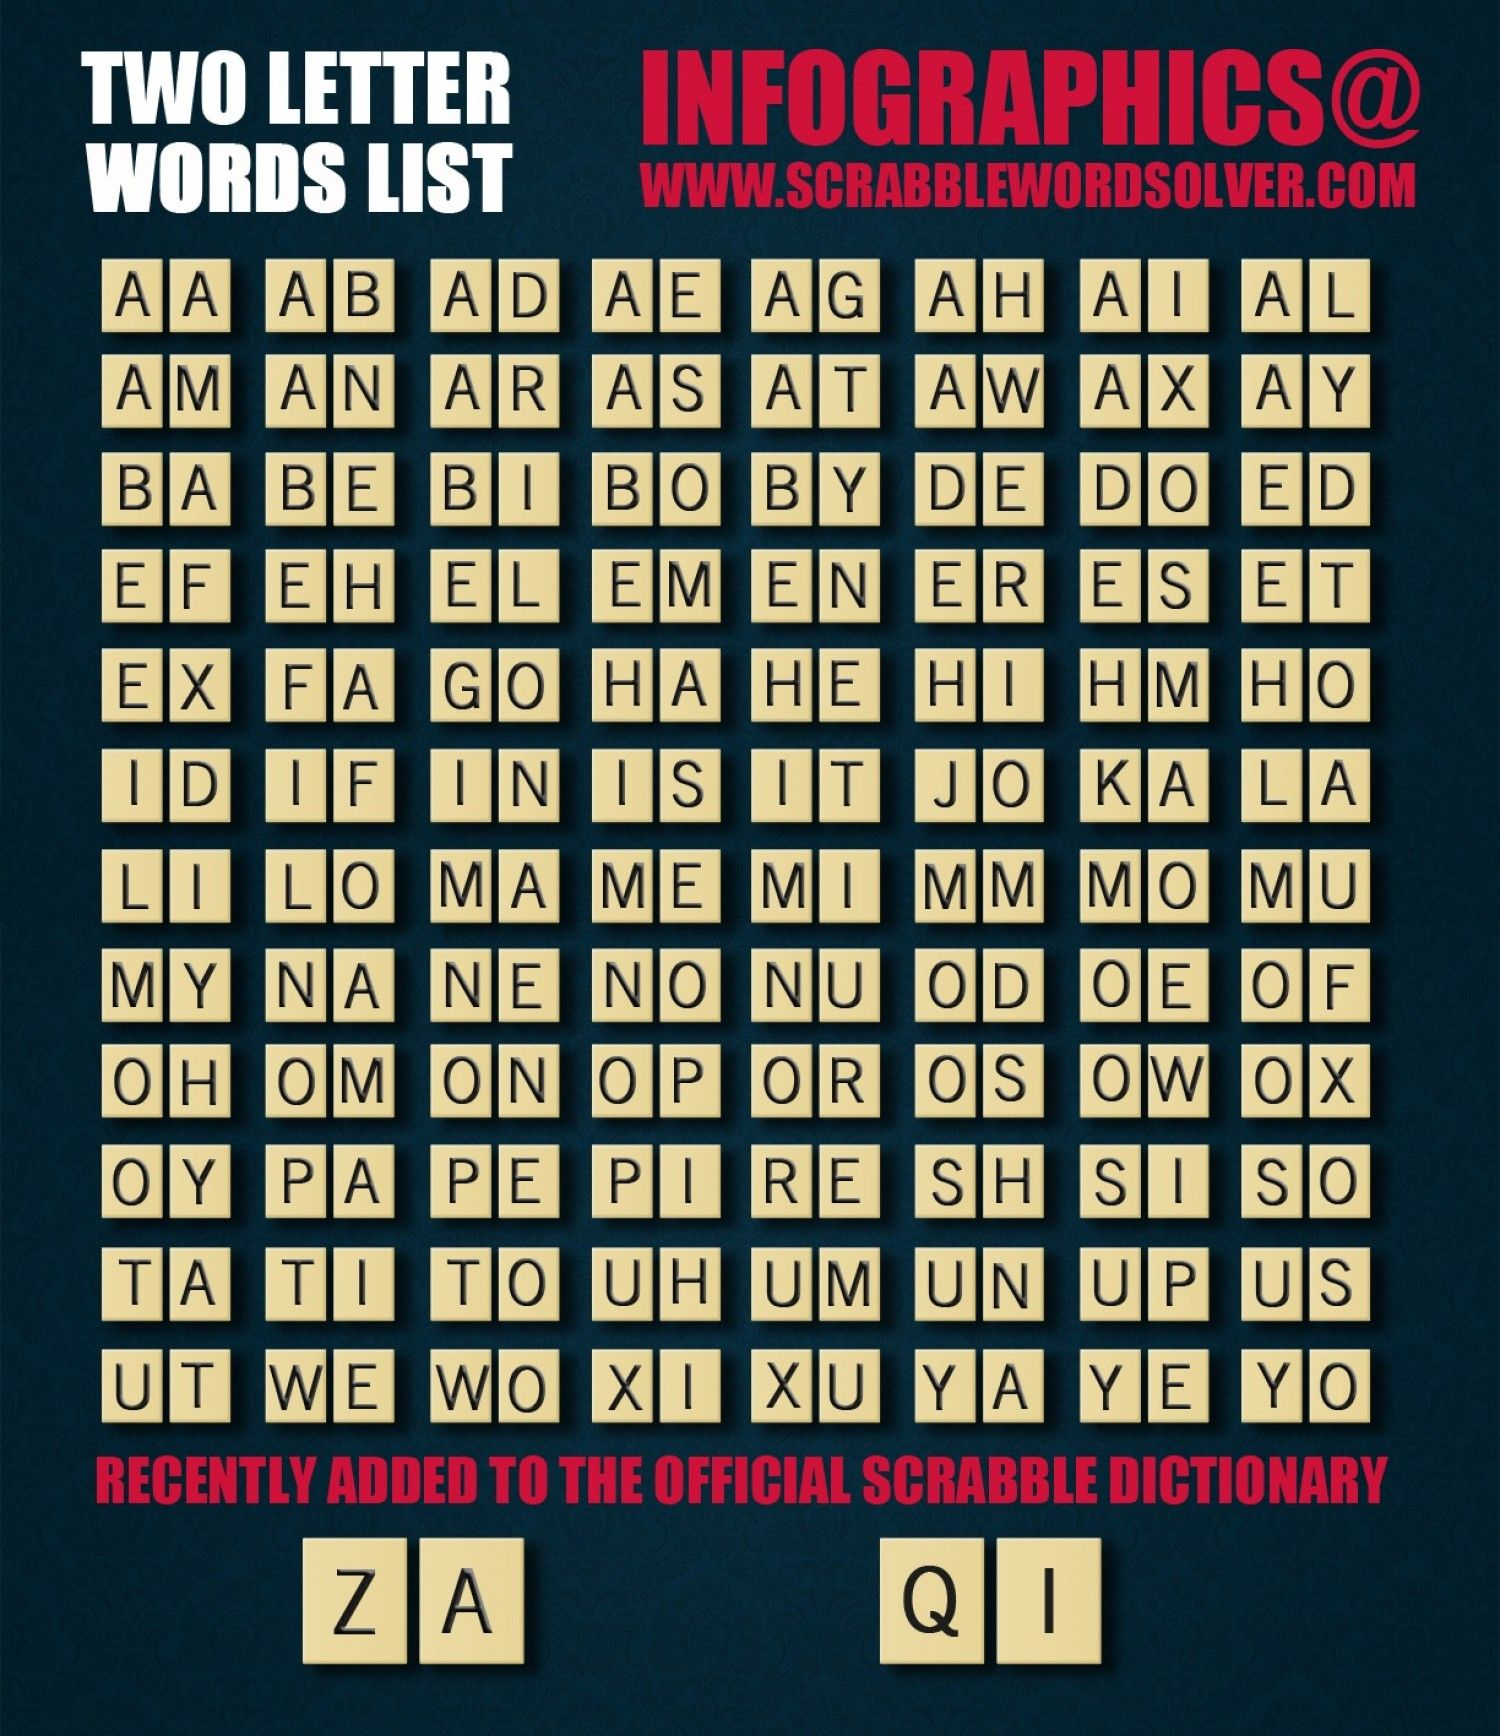 Official 2 Two Letter Word List for Scrabble Infographic